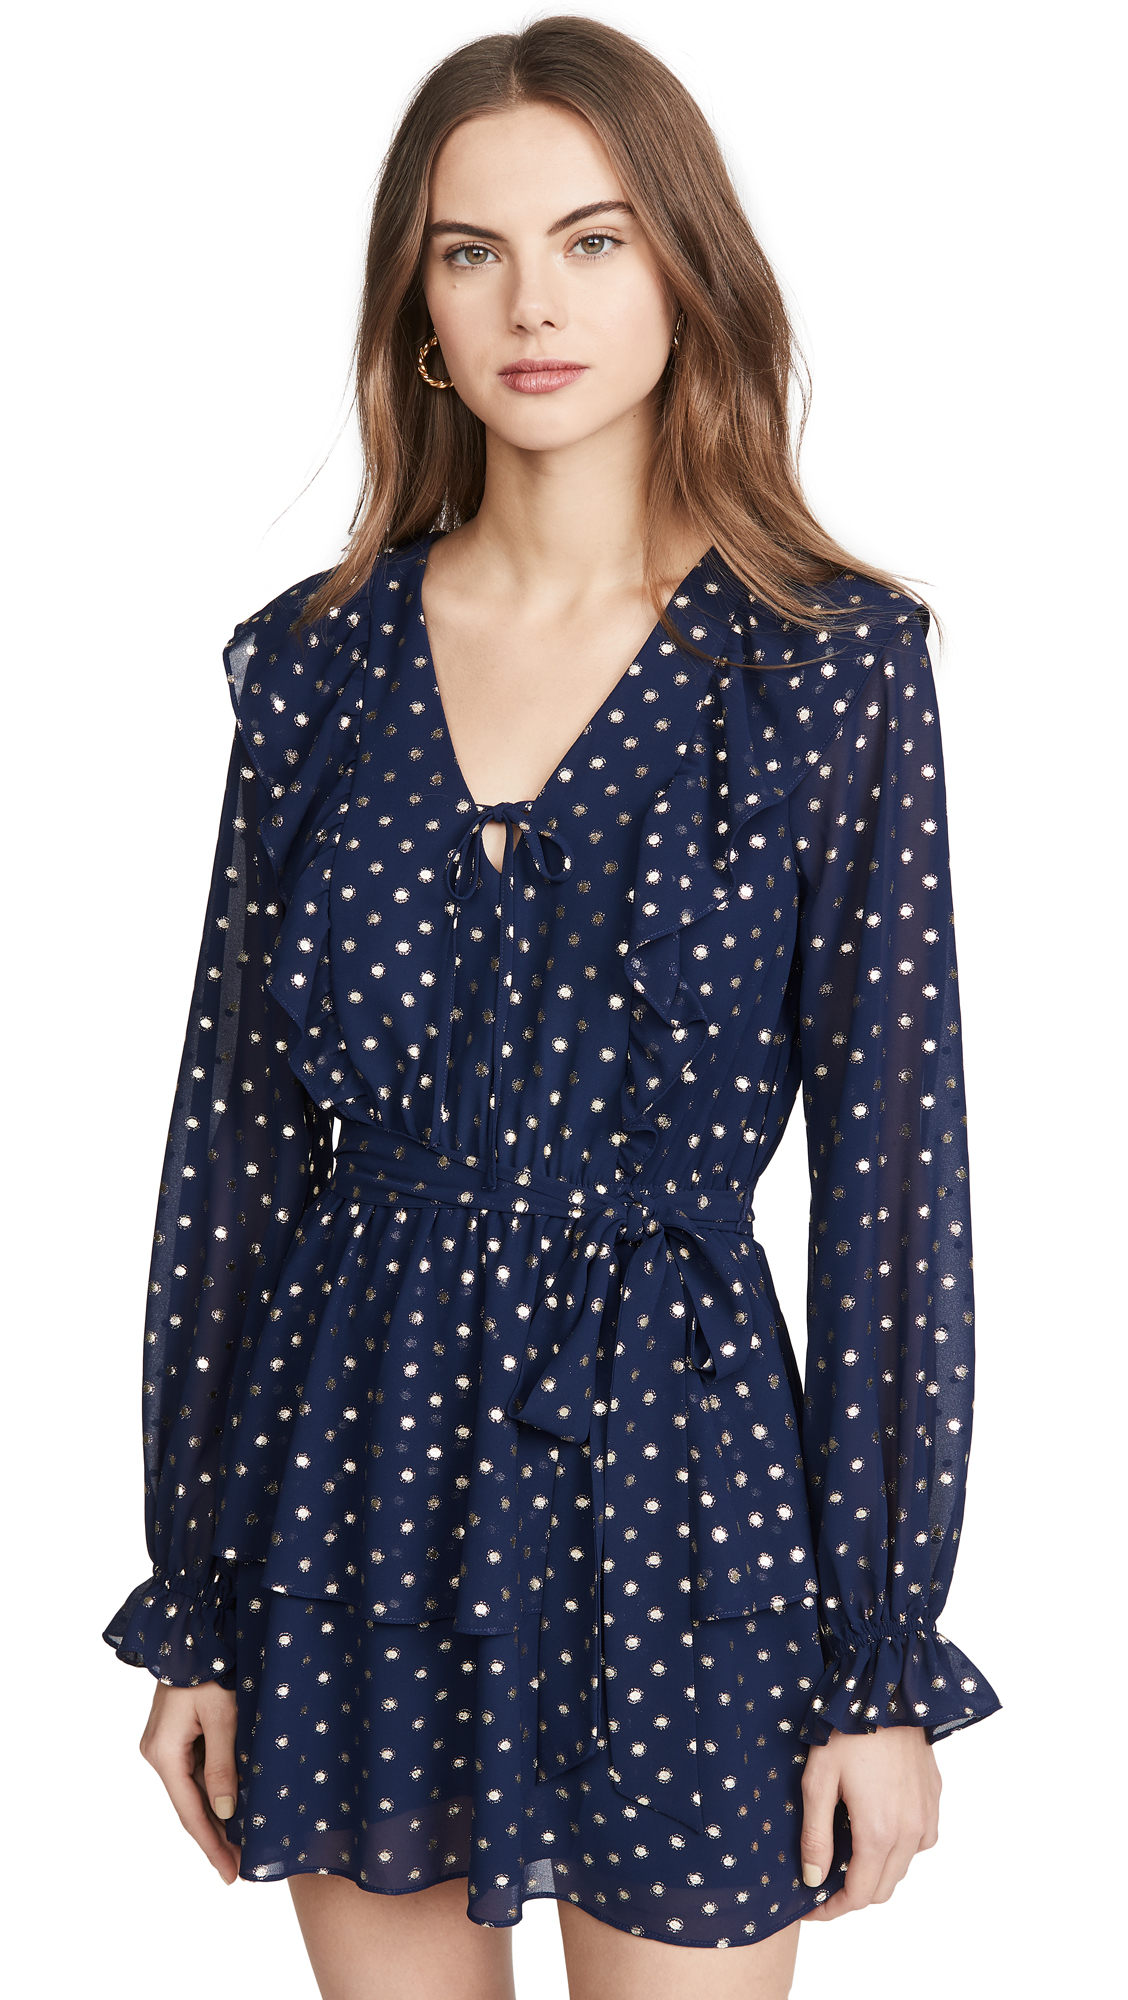 Yumi Kim West Village Dress - 50% Off Sale